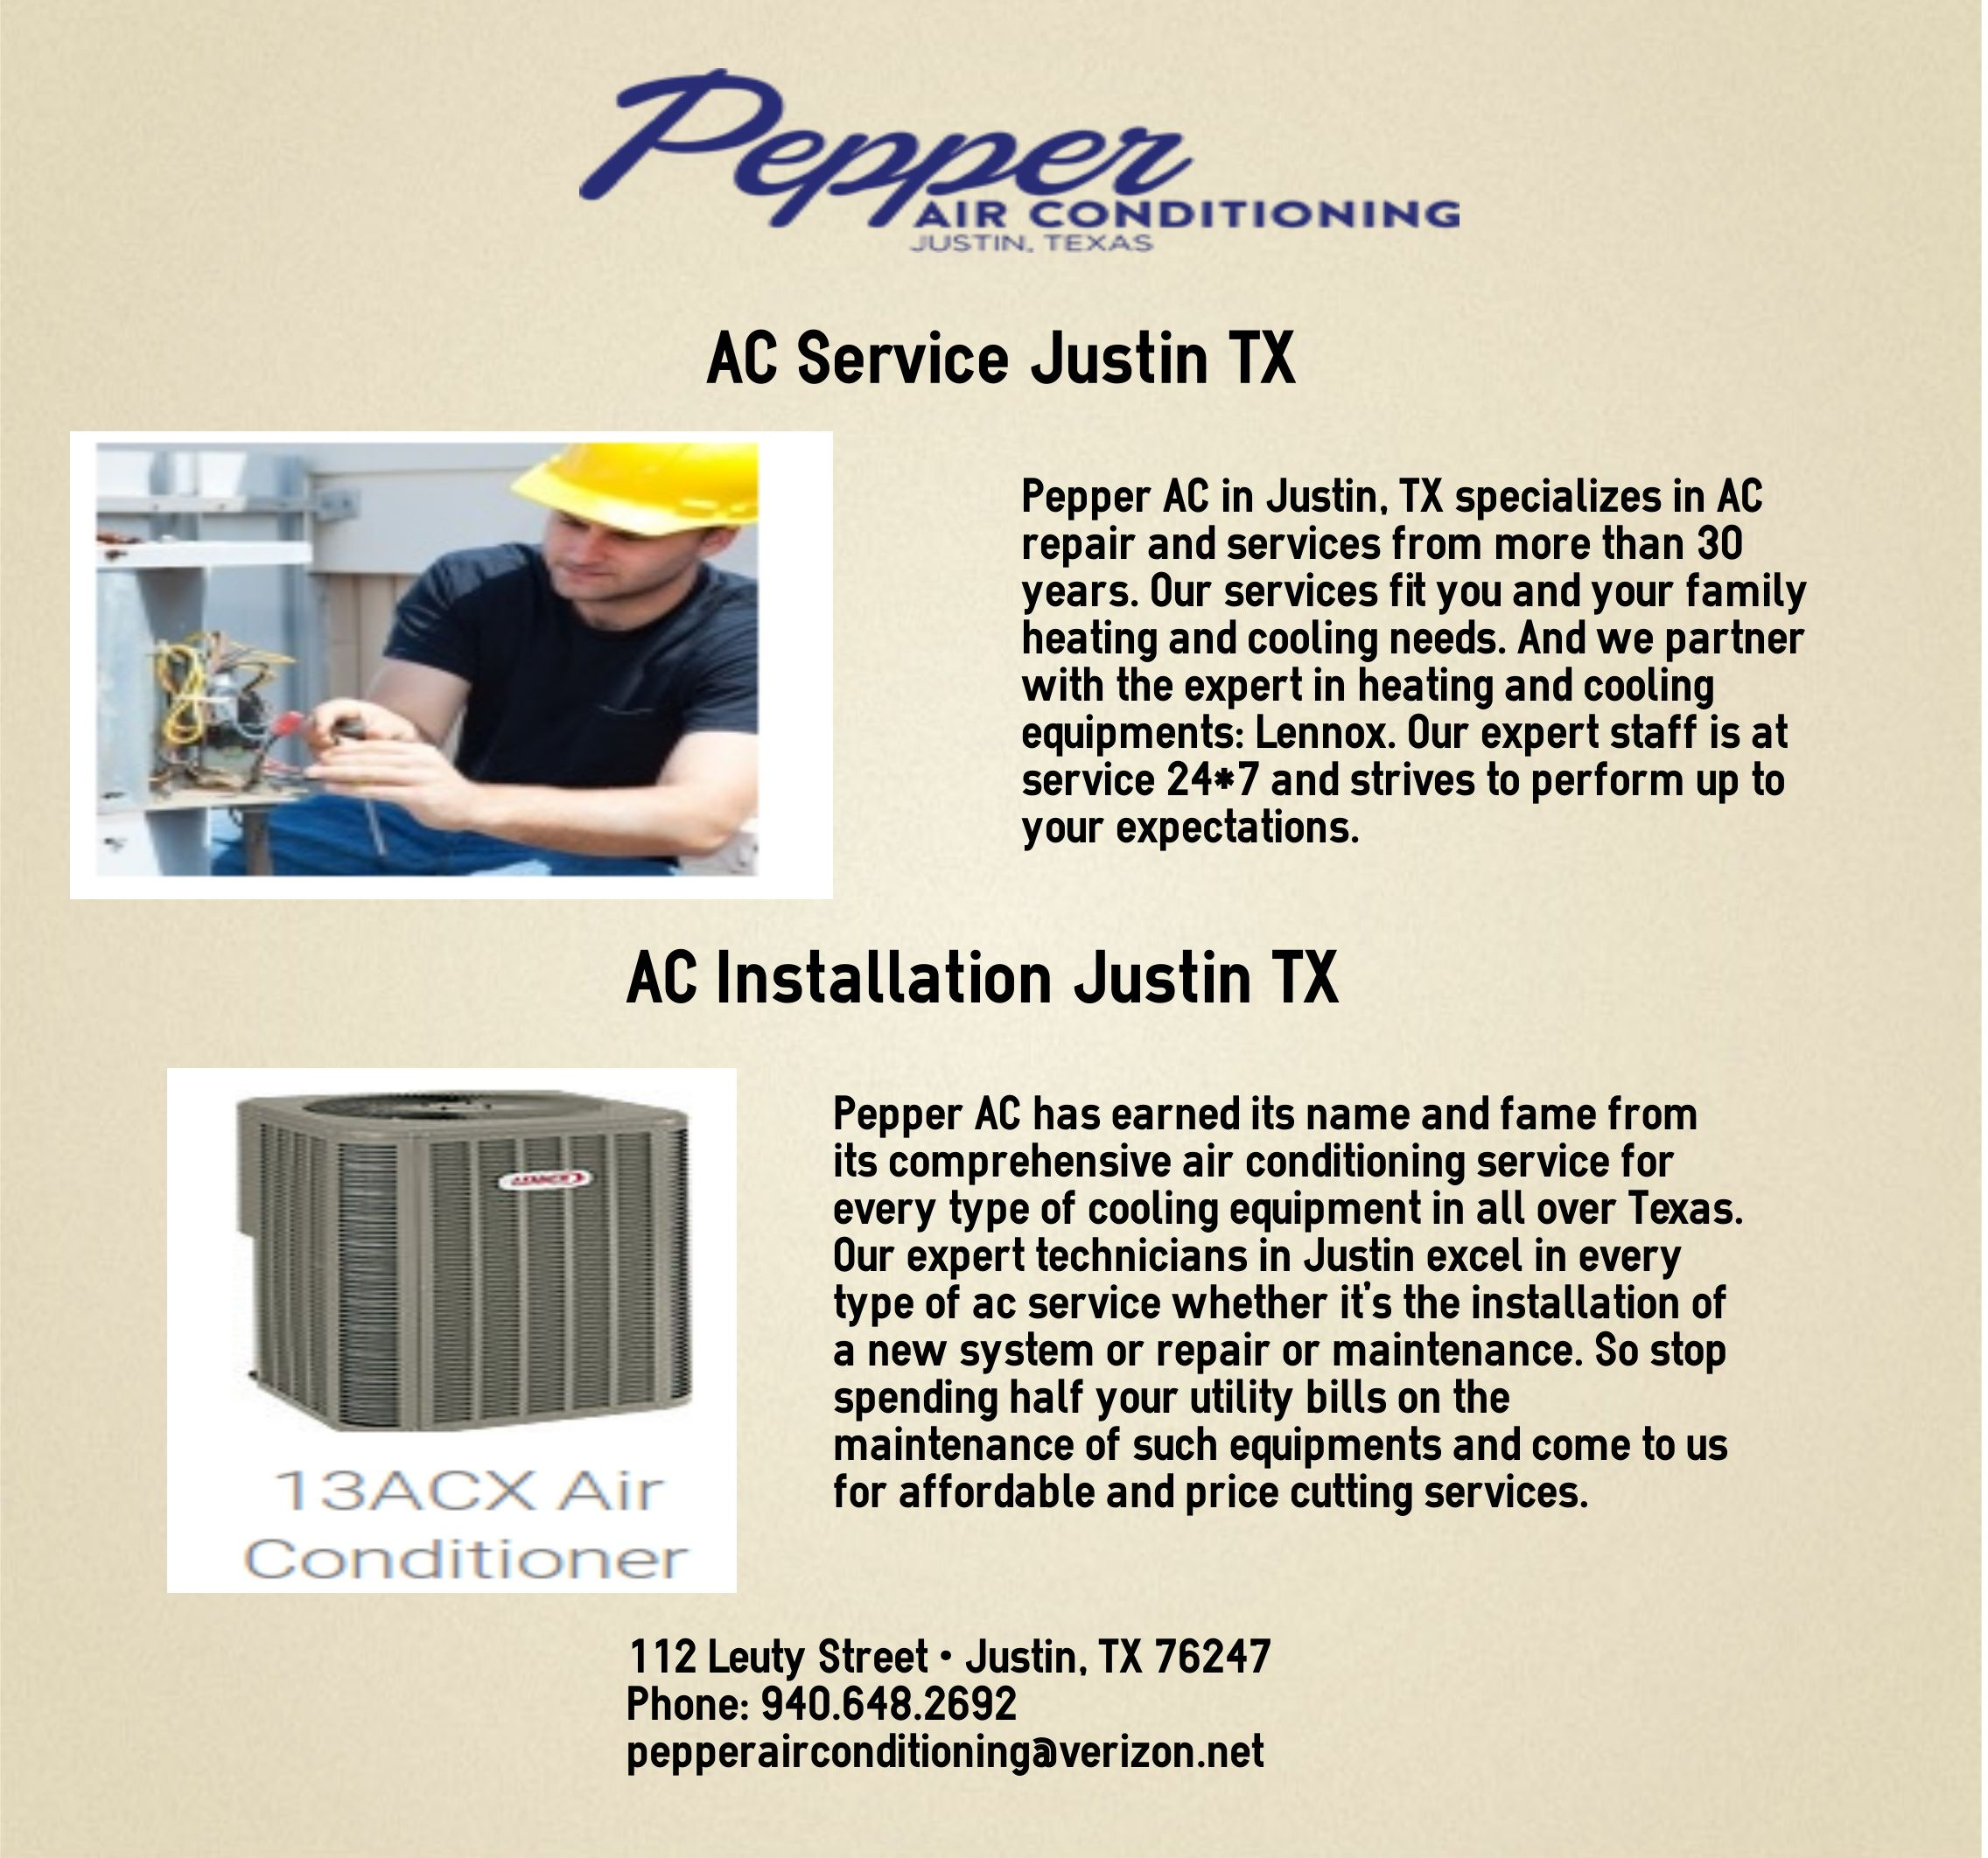 Pepper Ac In Justin Tx Specializes In Ac Repair And Services From